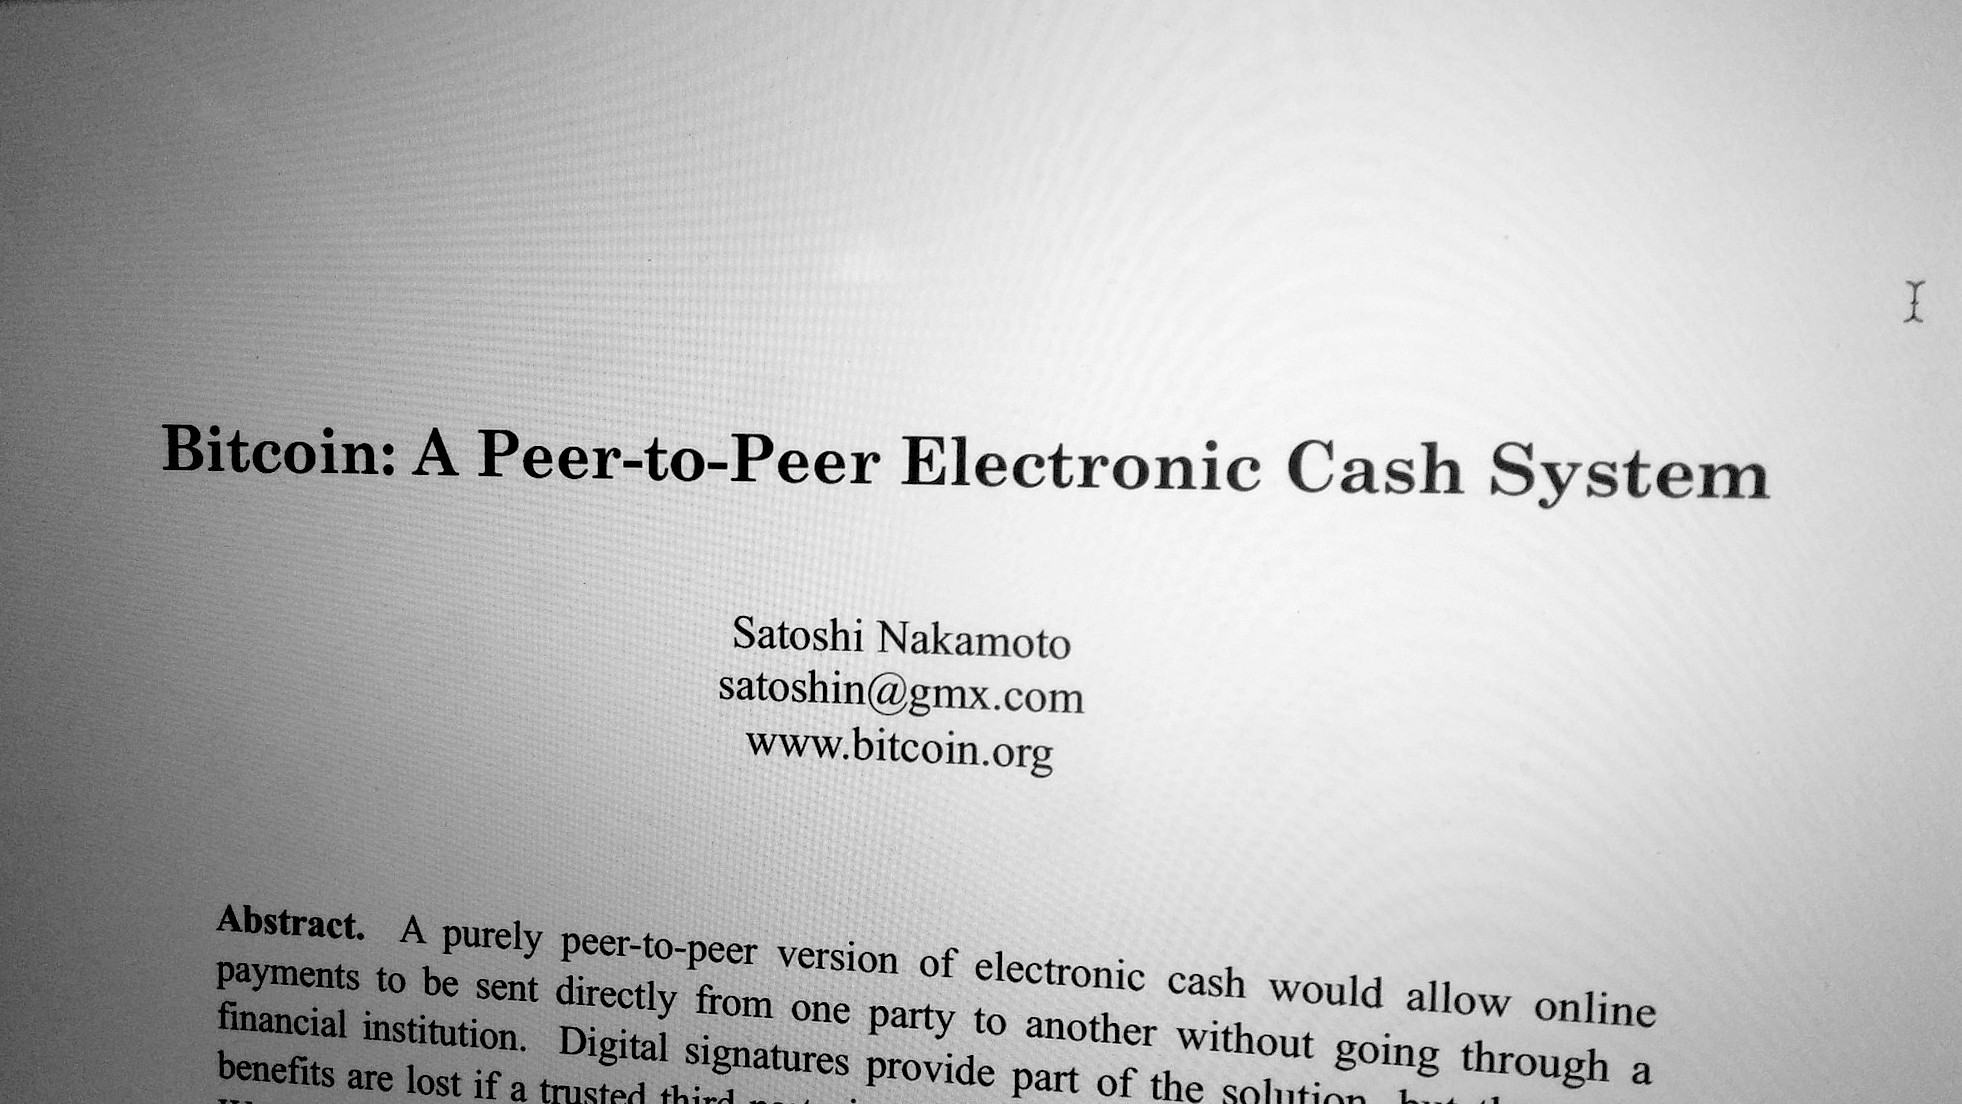 The Satoshi Nakamoto Email Hacker Says He's Negotiating with the Bitcoin Founder